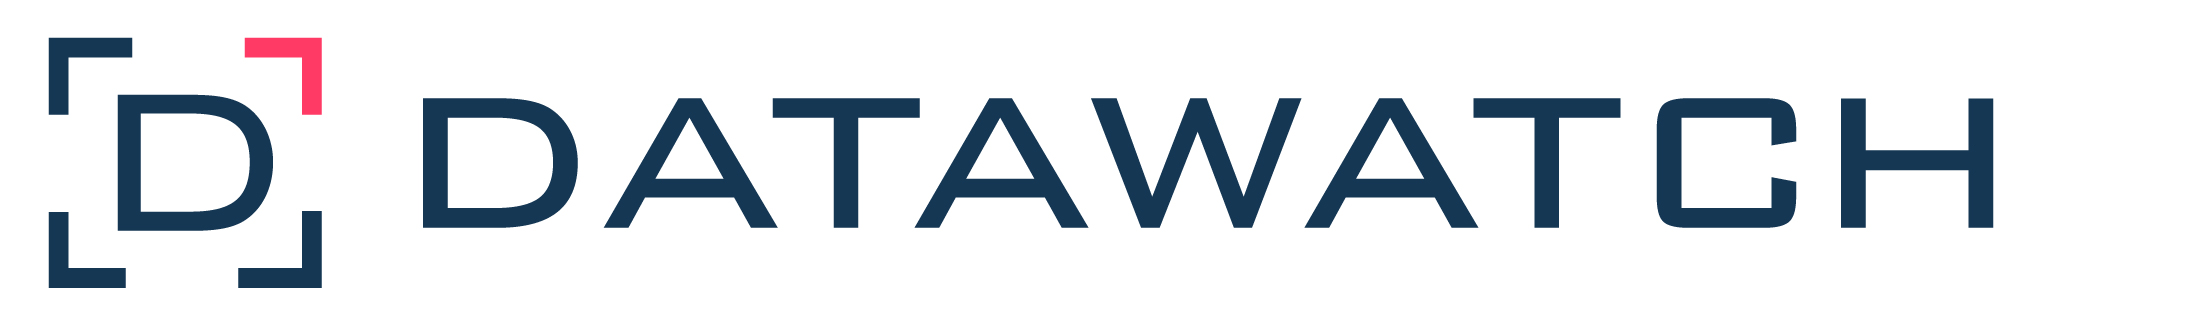 Datawatch Panopticon 16 Offers Most Advanced Real-Time Streaming Data Analytics and Visualization Capabilities for Capital Markets